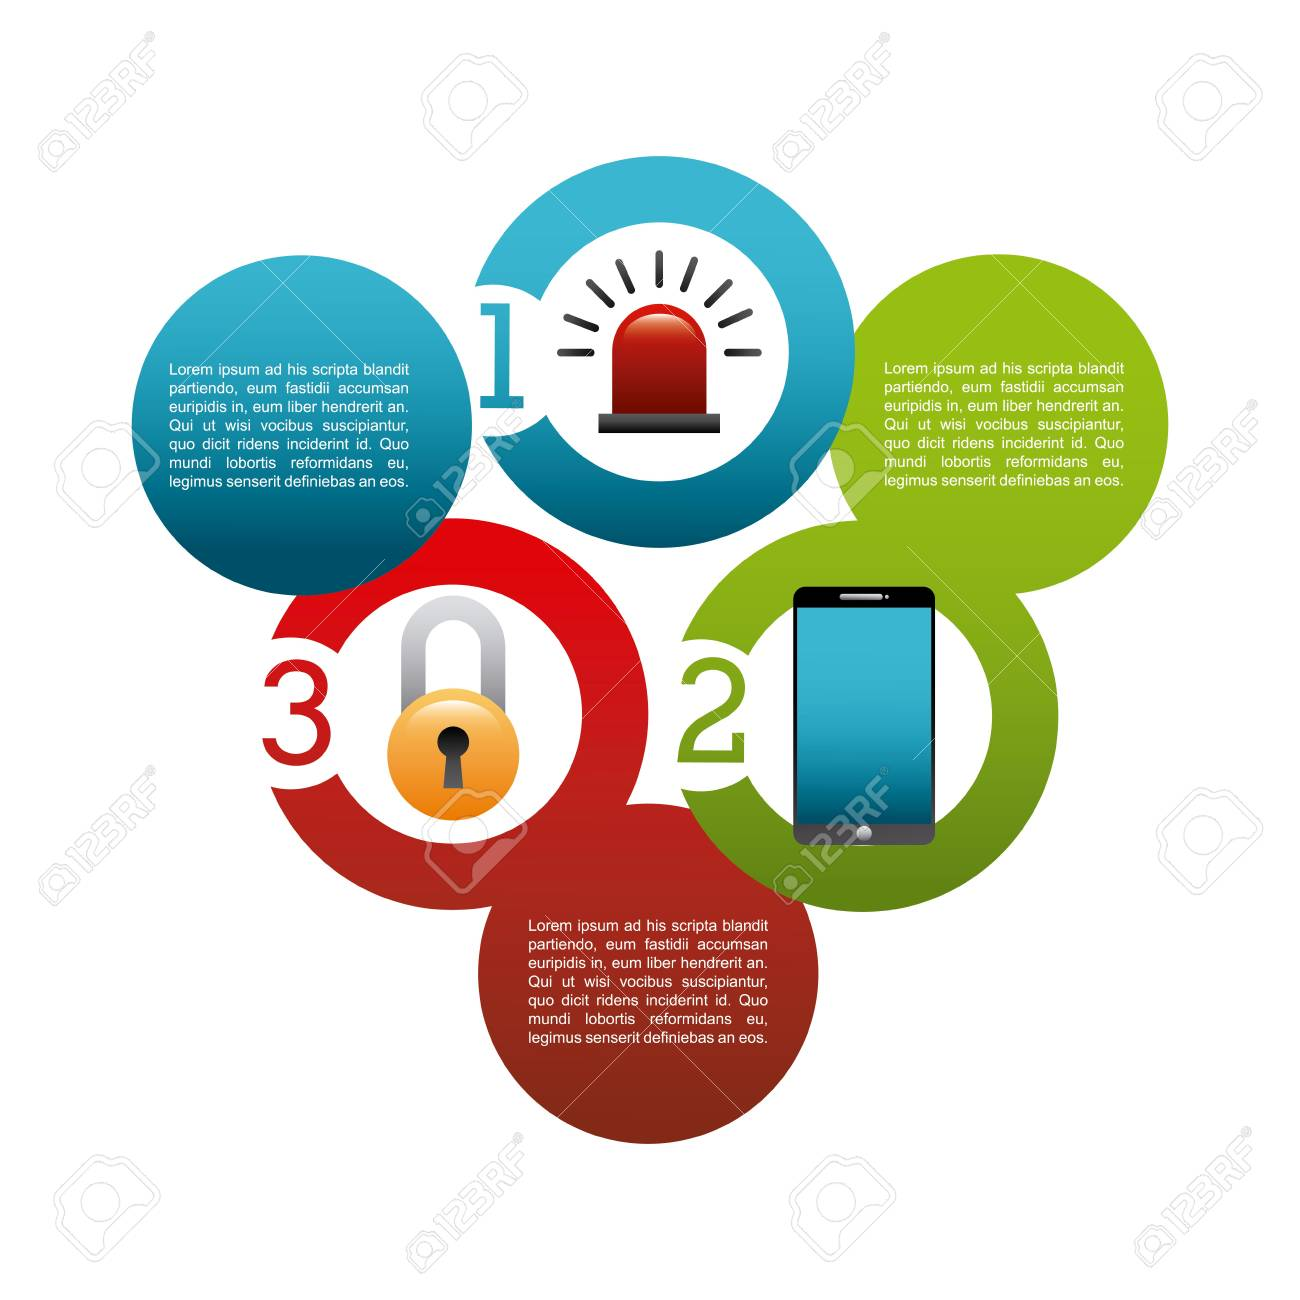 Web Security Clipart infographic